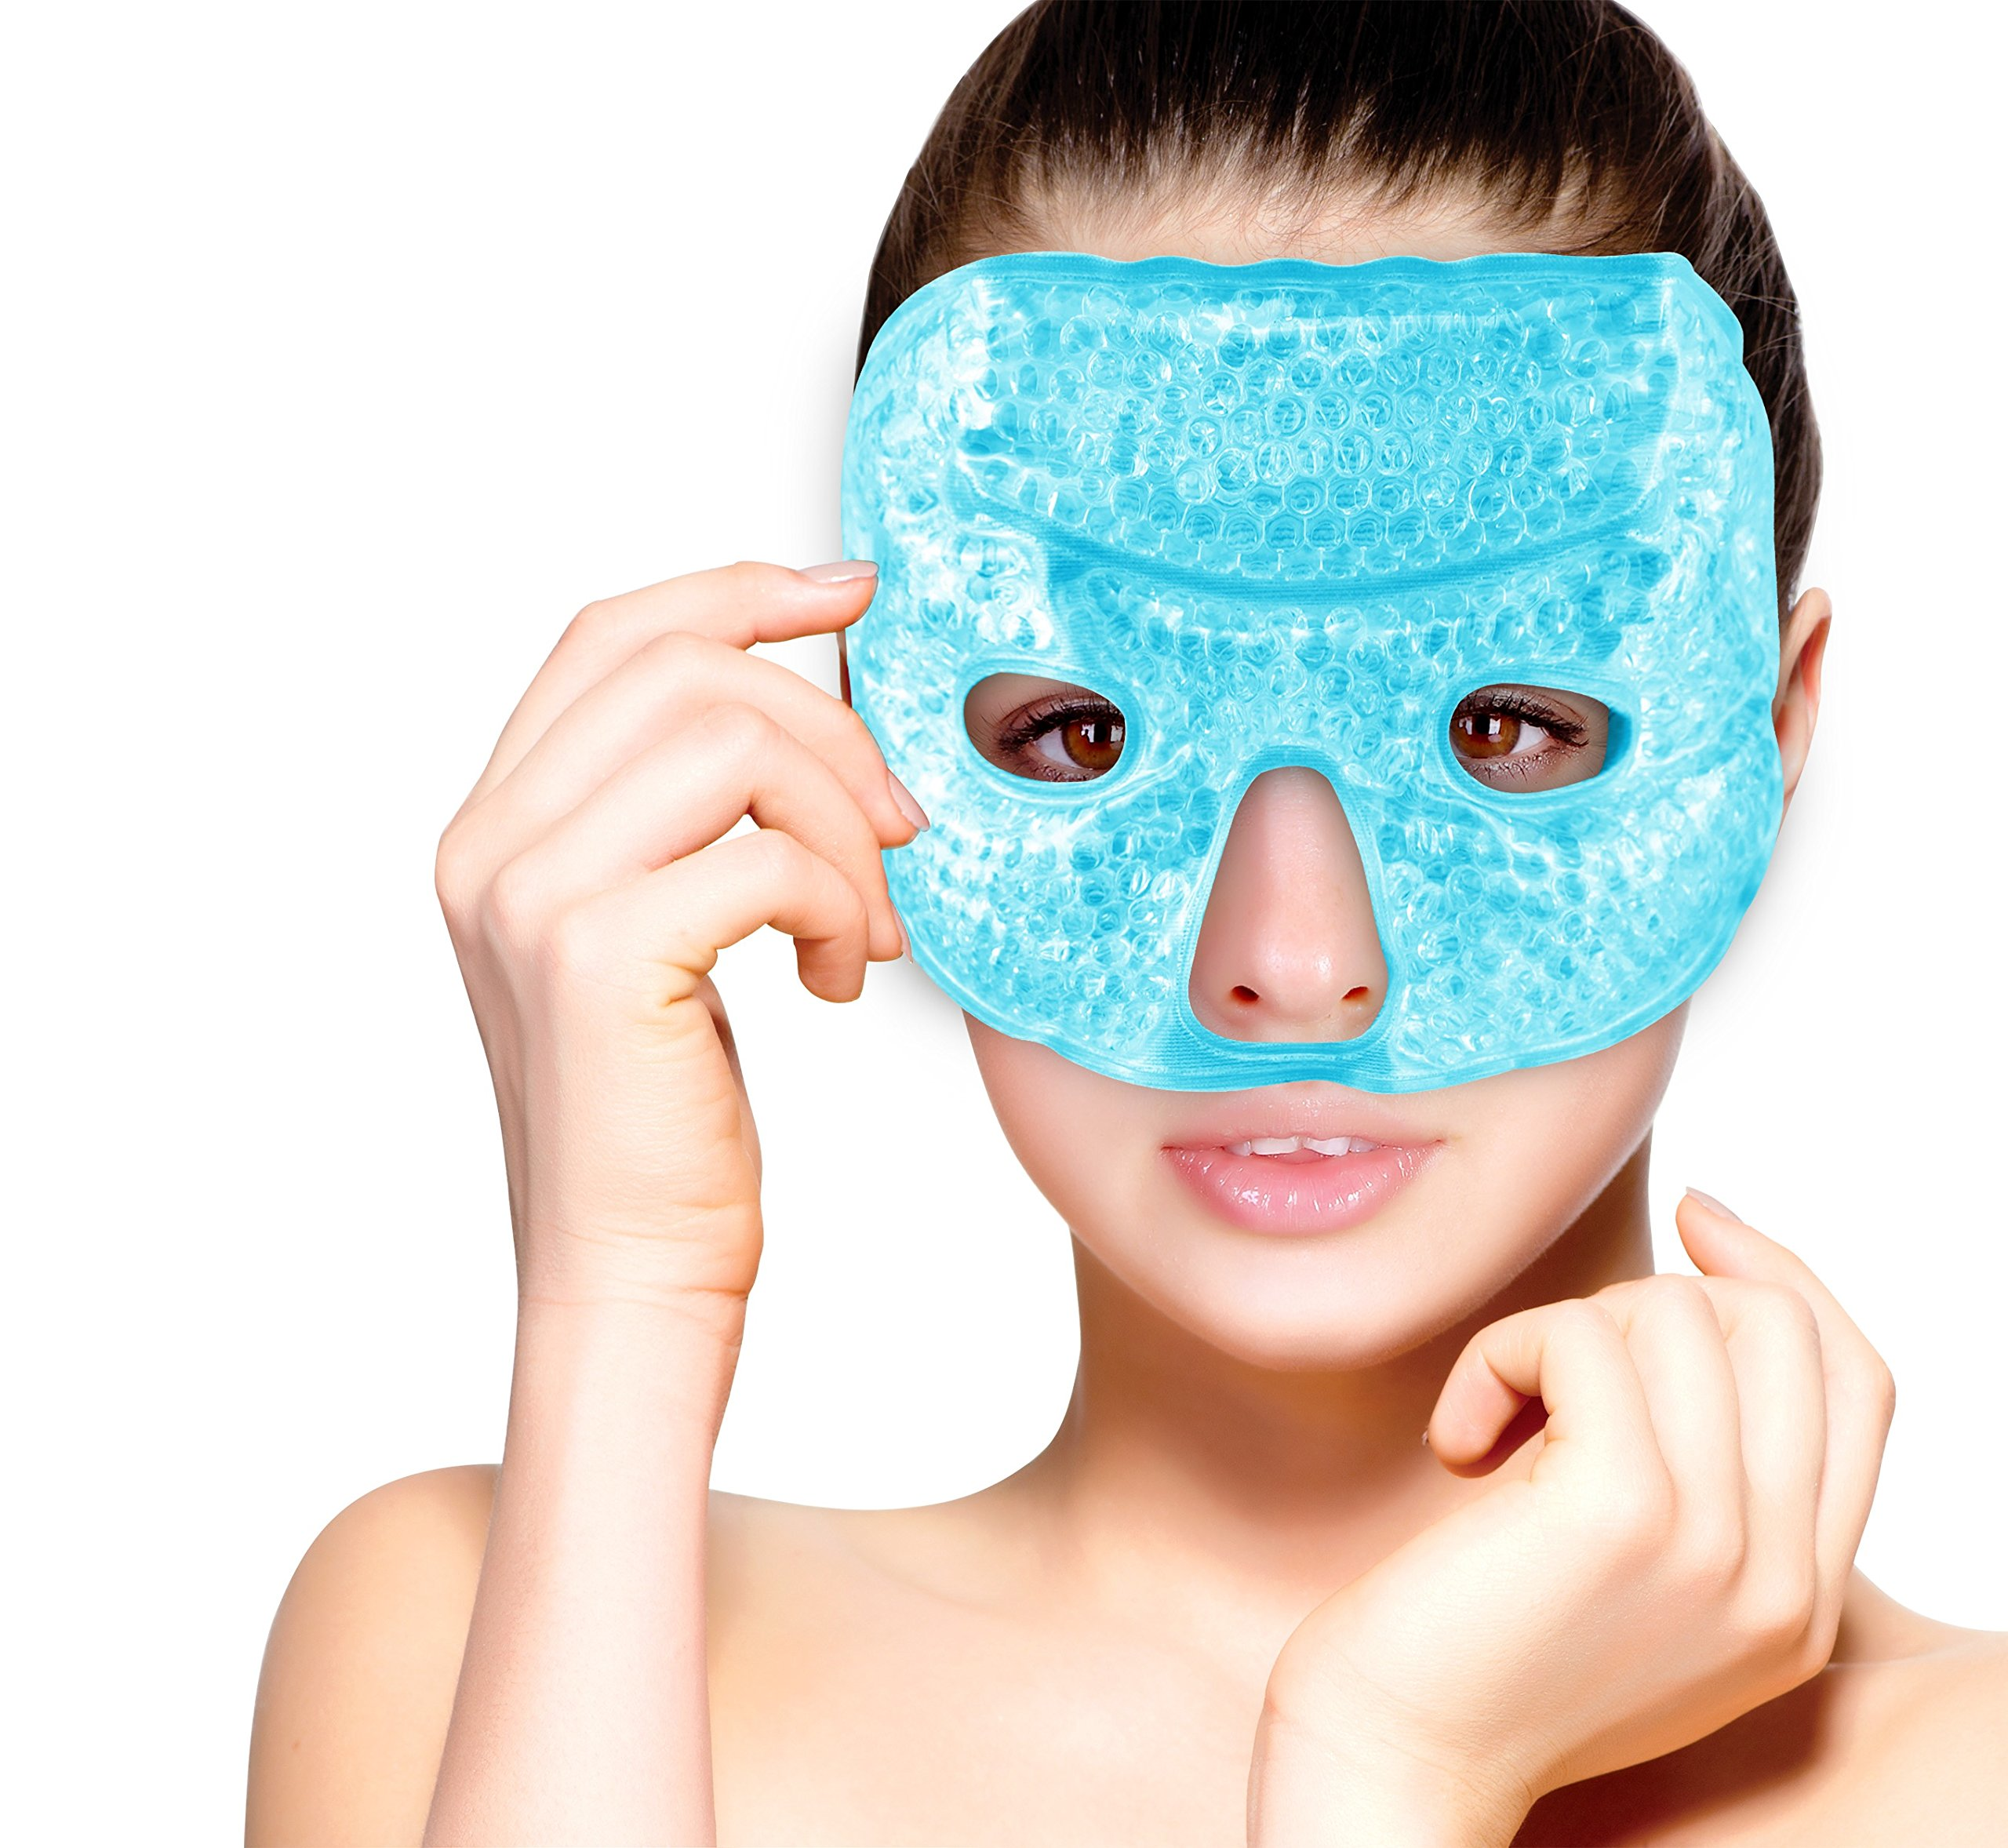 Hot and Cold Therapy Gel Bead Facial Eye Mask by FOMI Care   Ice Mask for Migraine Headache, Stress Relief   Reduces Eyes Puffiness, Dark Circles   Fabric Back   Freezable, Microwavable (Blue)